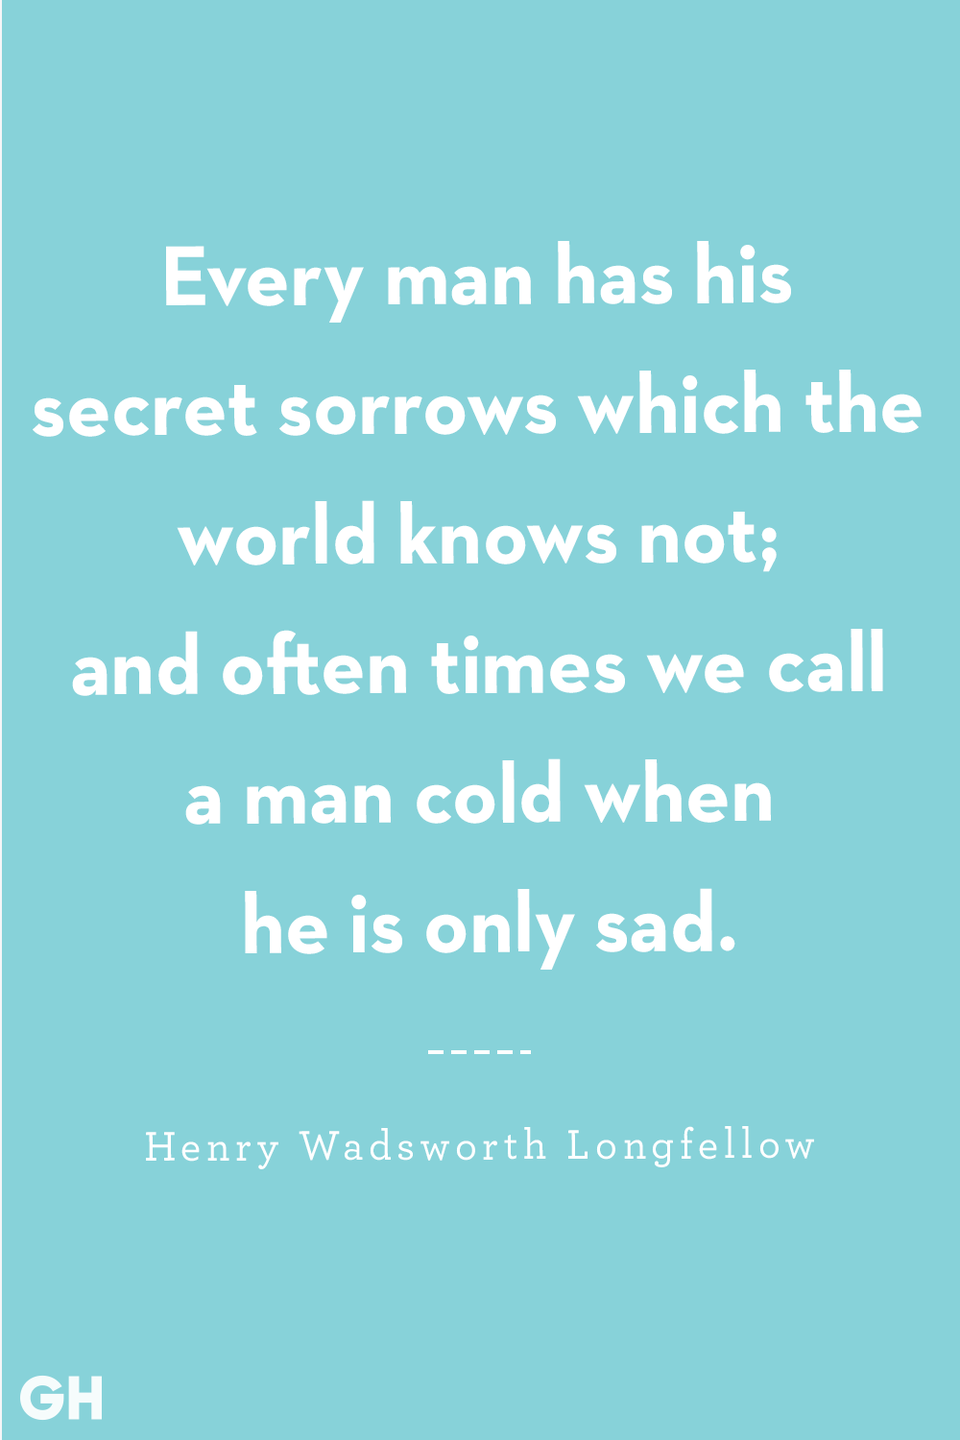 <p>Every man has his secret sorrows which the world knows not; and often times we call a man cold when he is only sad.</p>